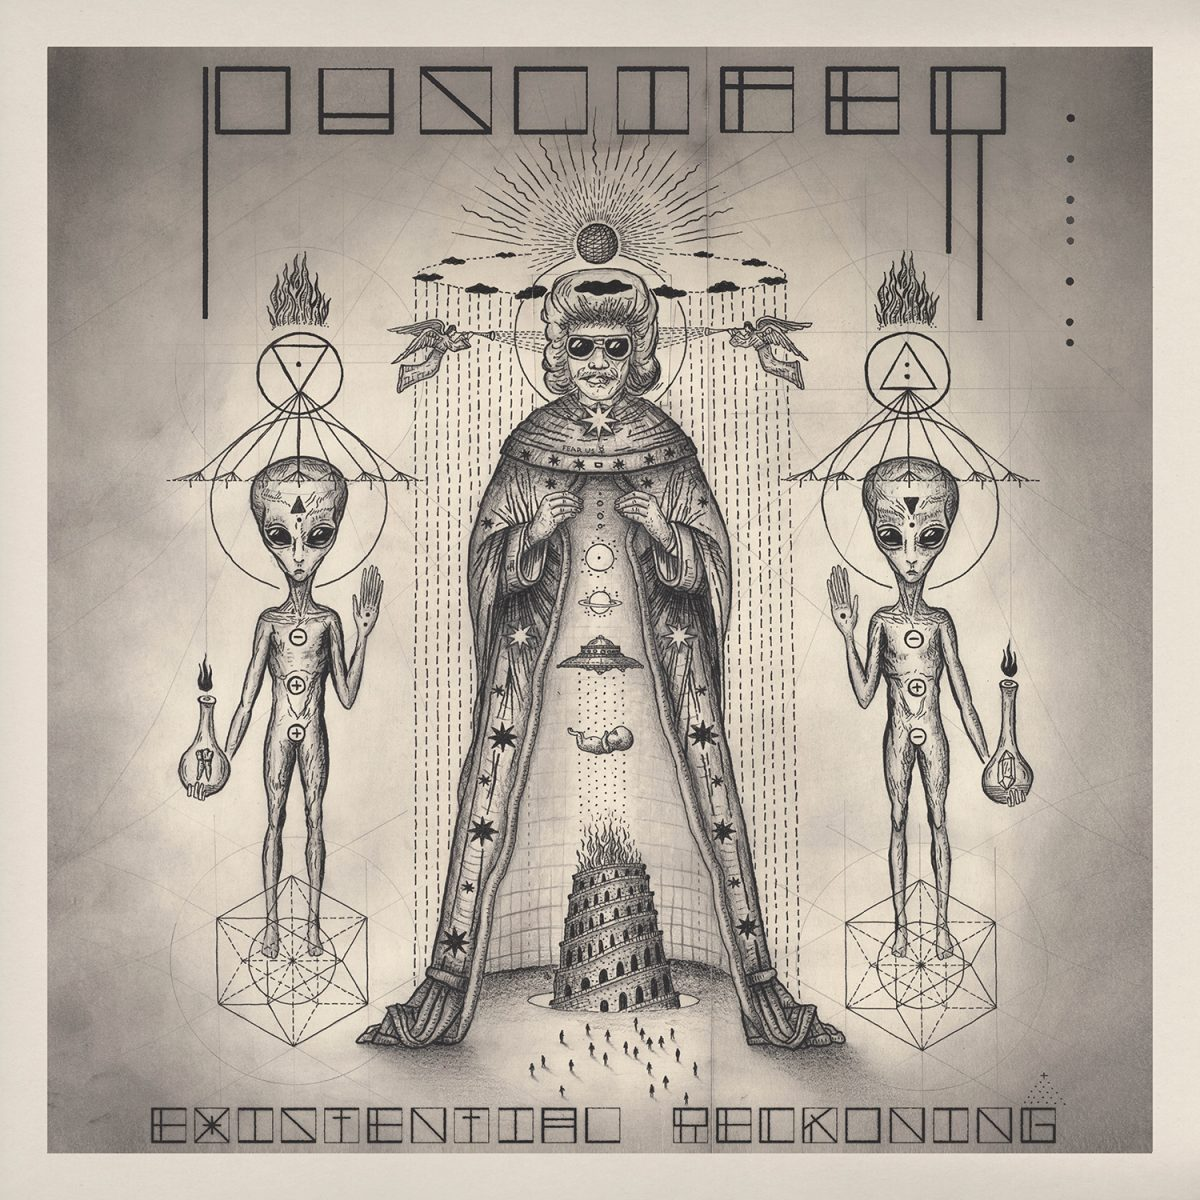 puscifer-existential-reckoning-album-review